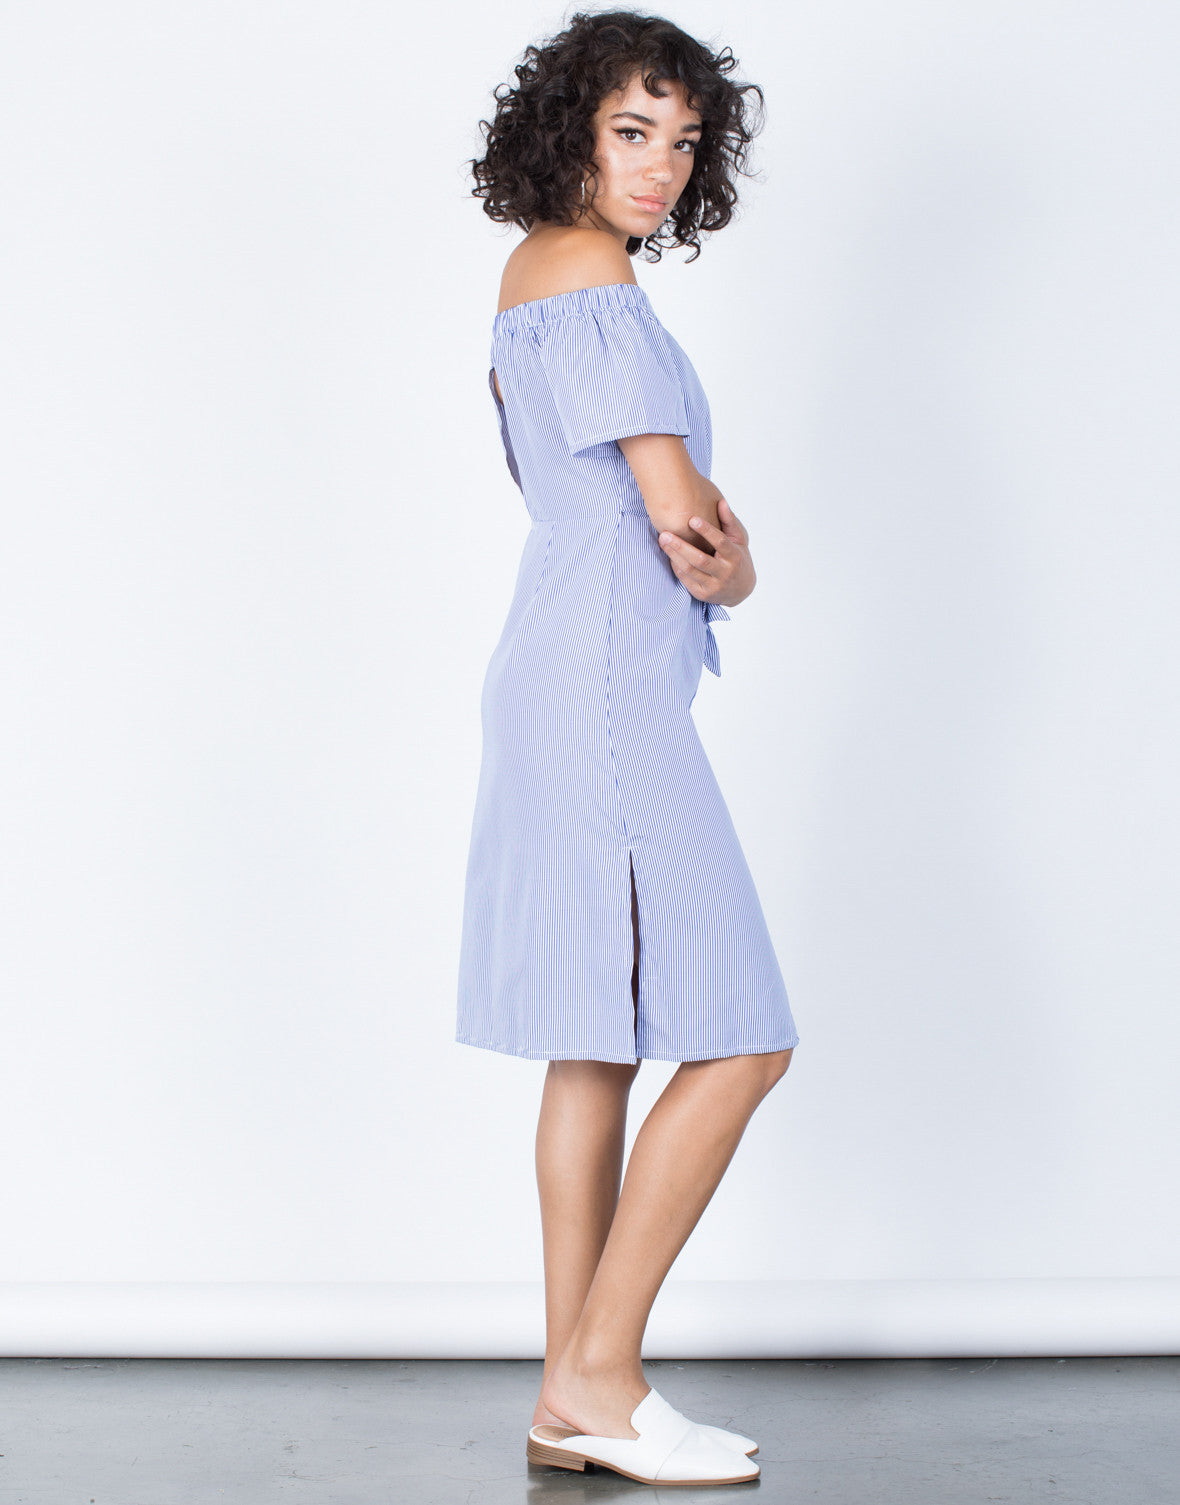 Blue Sail Away Striped Dress - SIde View